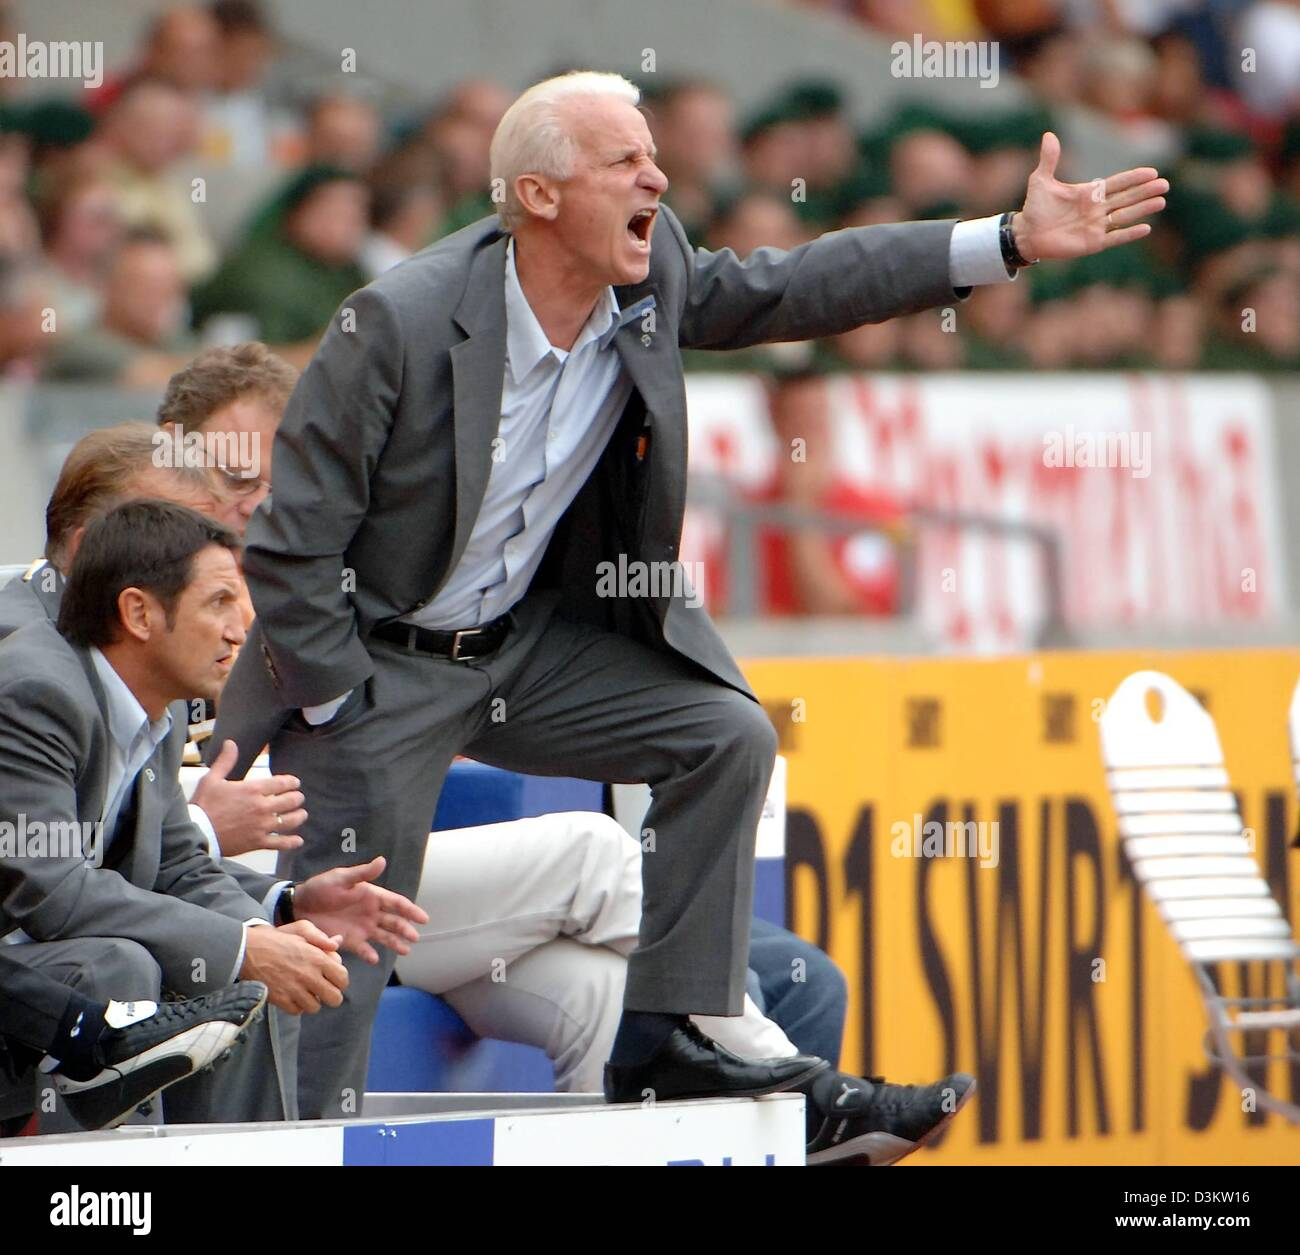 (dpa) - Stuttgart's soccer coach Giovanni Trapattoni shouts instructions to his players on the pitch during the Stock Photo